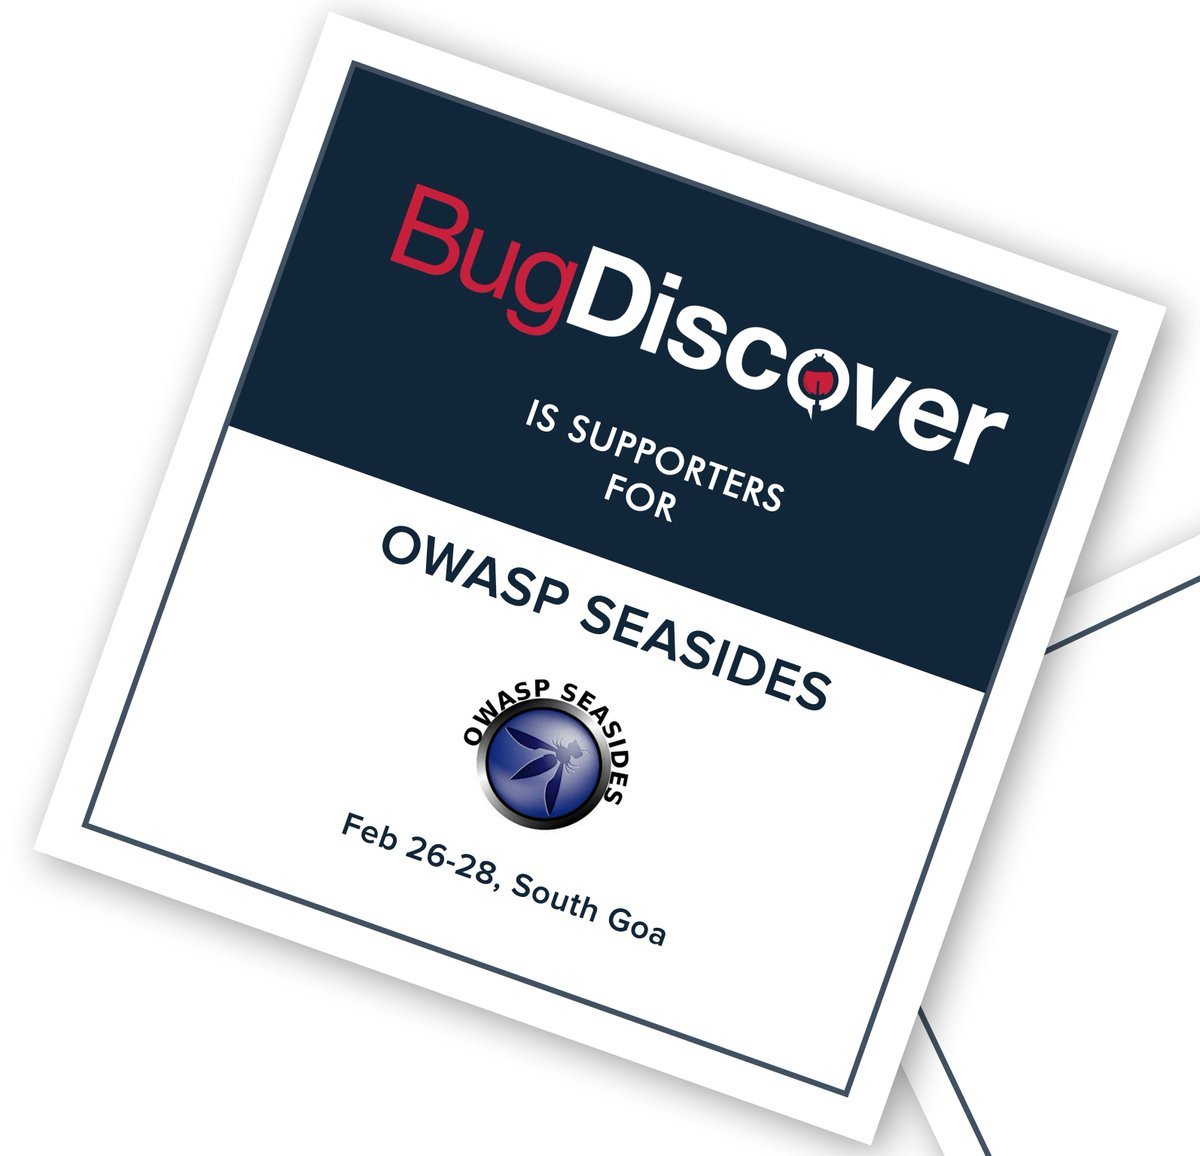 We really appreciate the great initiative taken by @Owaspseasides for the Infosec community. It's a delightful moment for us to be the supporters of the event. For more details about the event contact: https://www.owaspseasides.com/ #BugBounty #cybersecurity #infosec #crowdsourcing